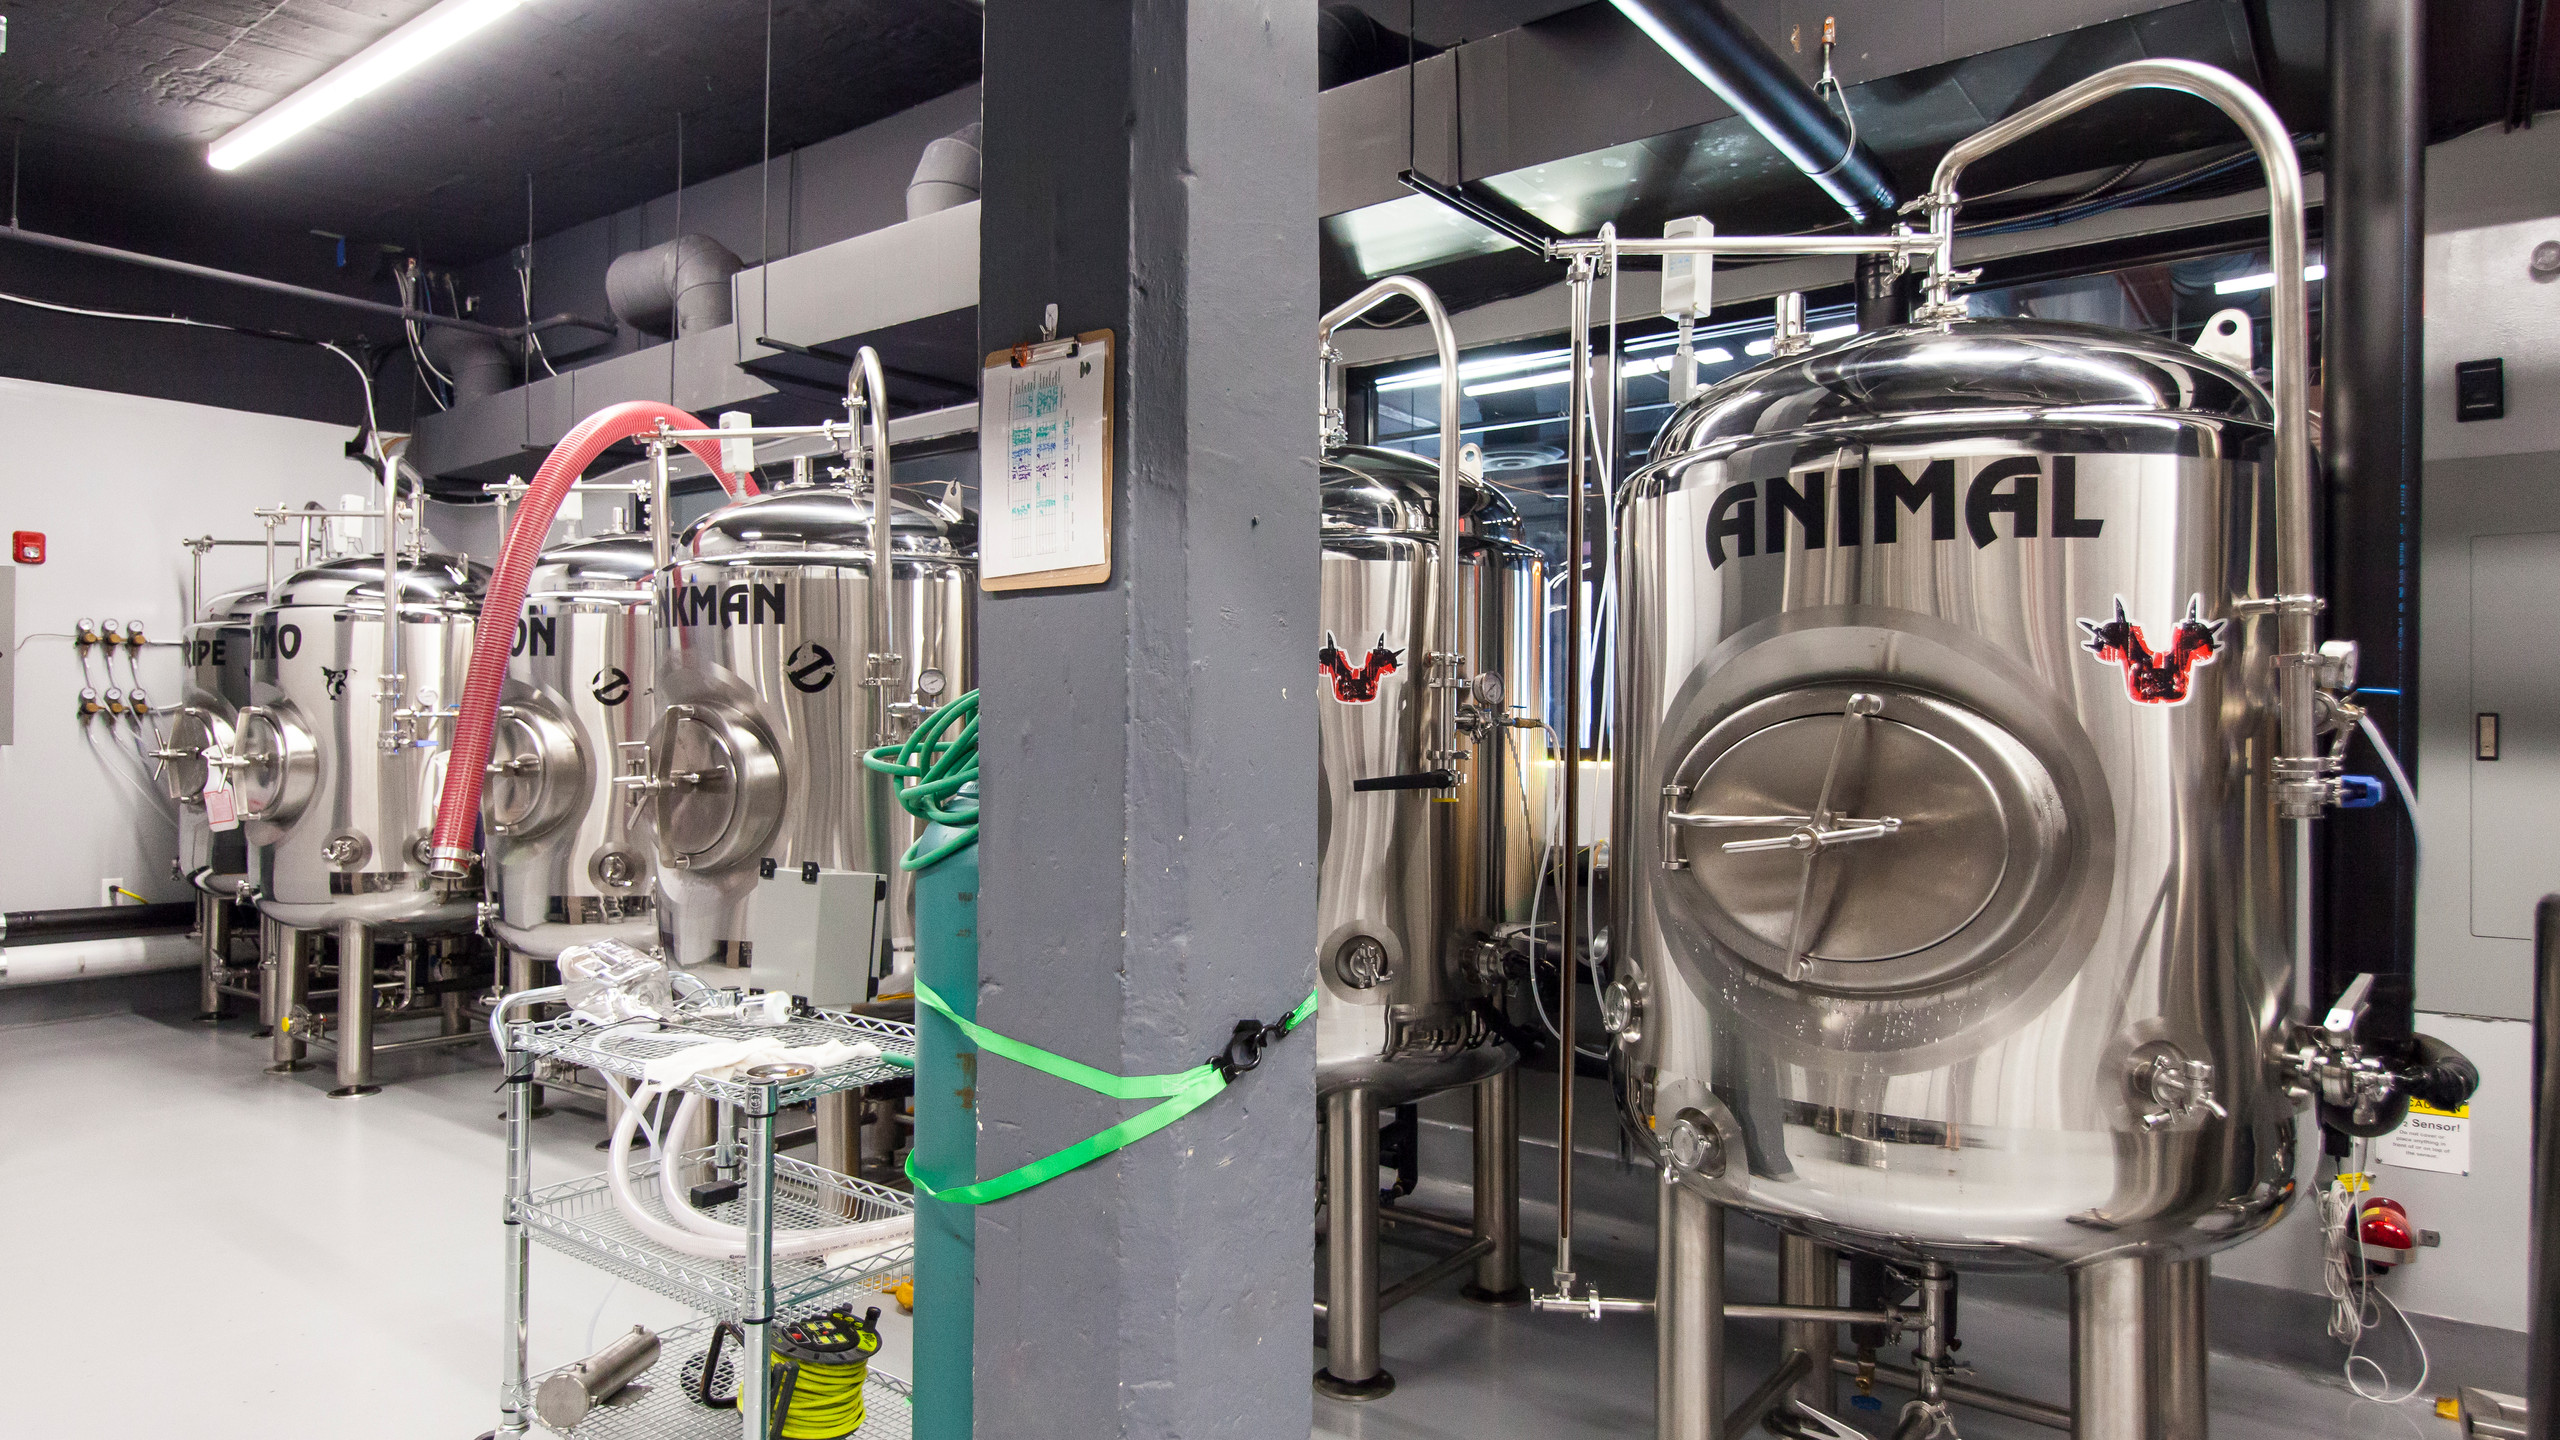 The backroom brewhouse